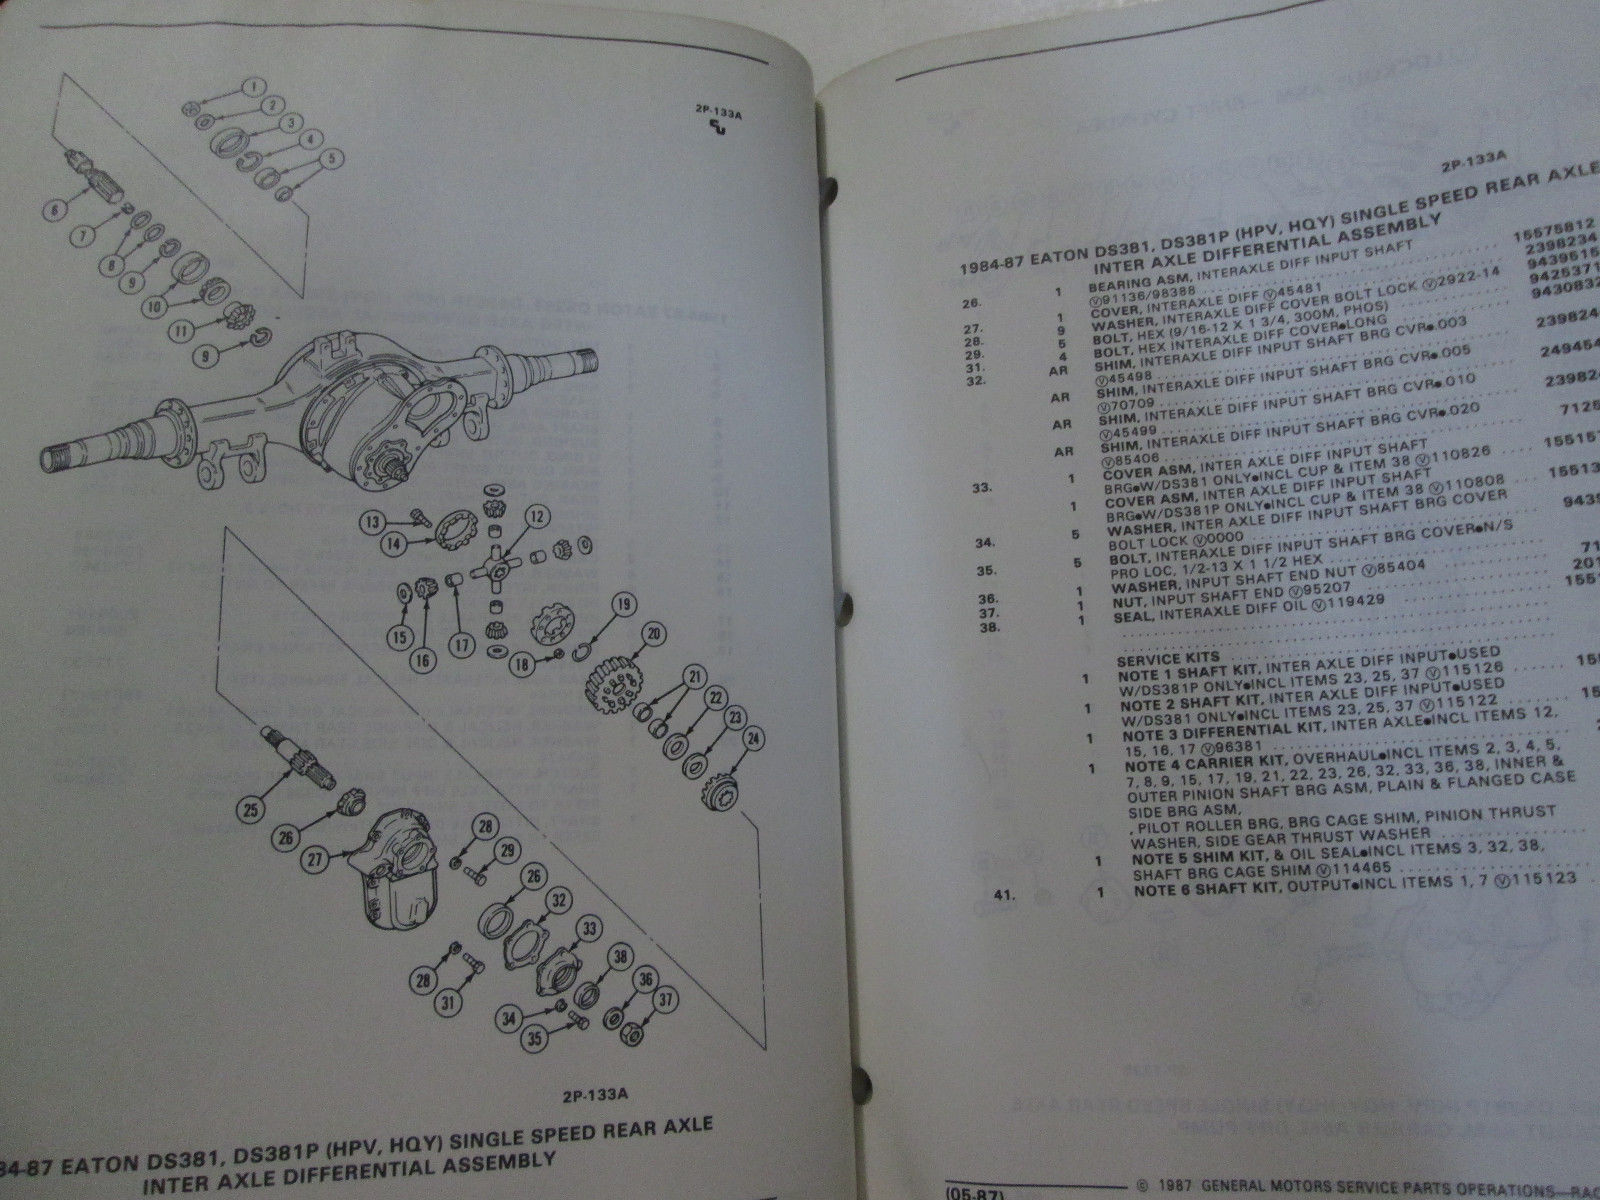 1984 1985 1986 1987 GM TRUCK MEDIUM DUTY REAR AXLE PARTS Catalog Manual OEM Book image 4